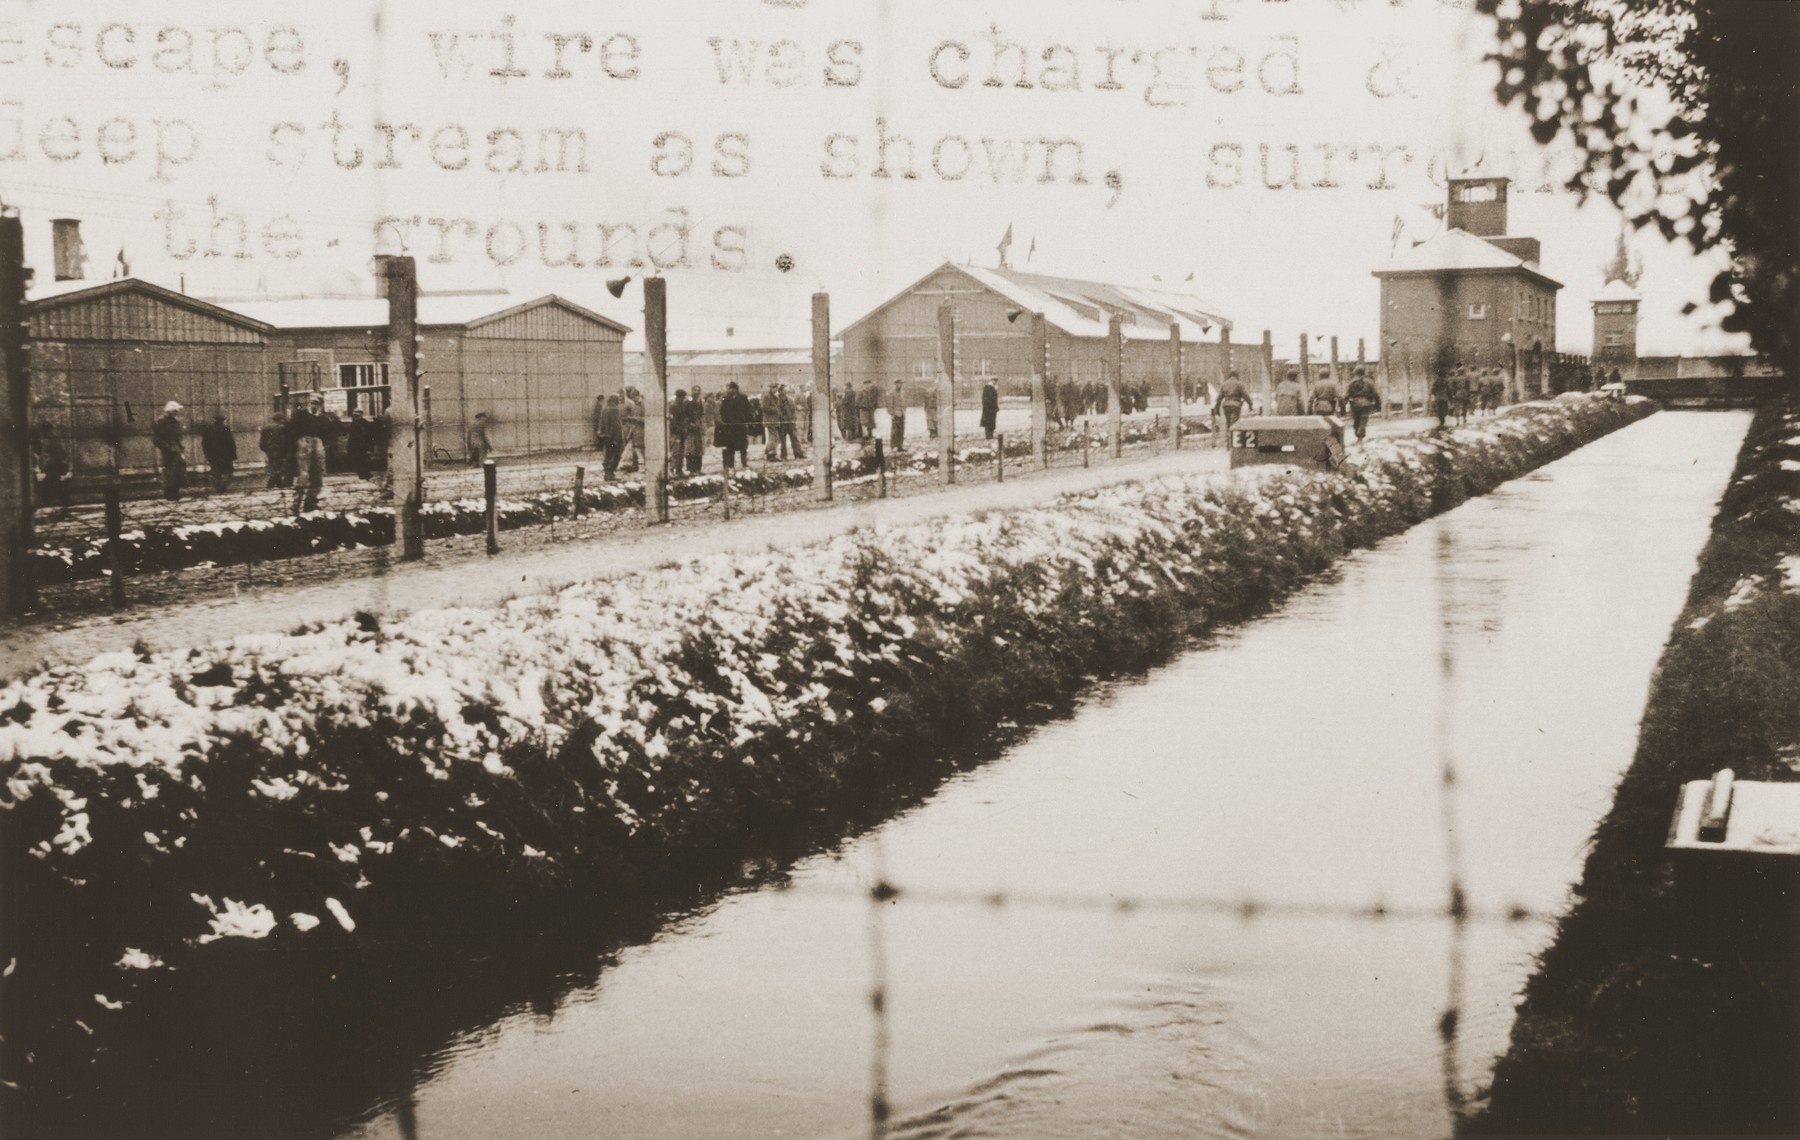 View of the newly liberated Dachau concentration camp, in which survivors are walking along the main street of the camp behind a long, barbed-wire fence that runs parallel to a moat